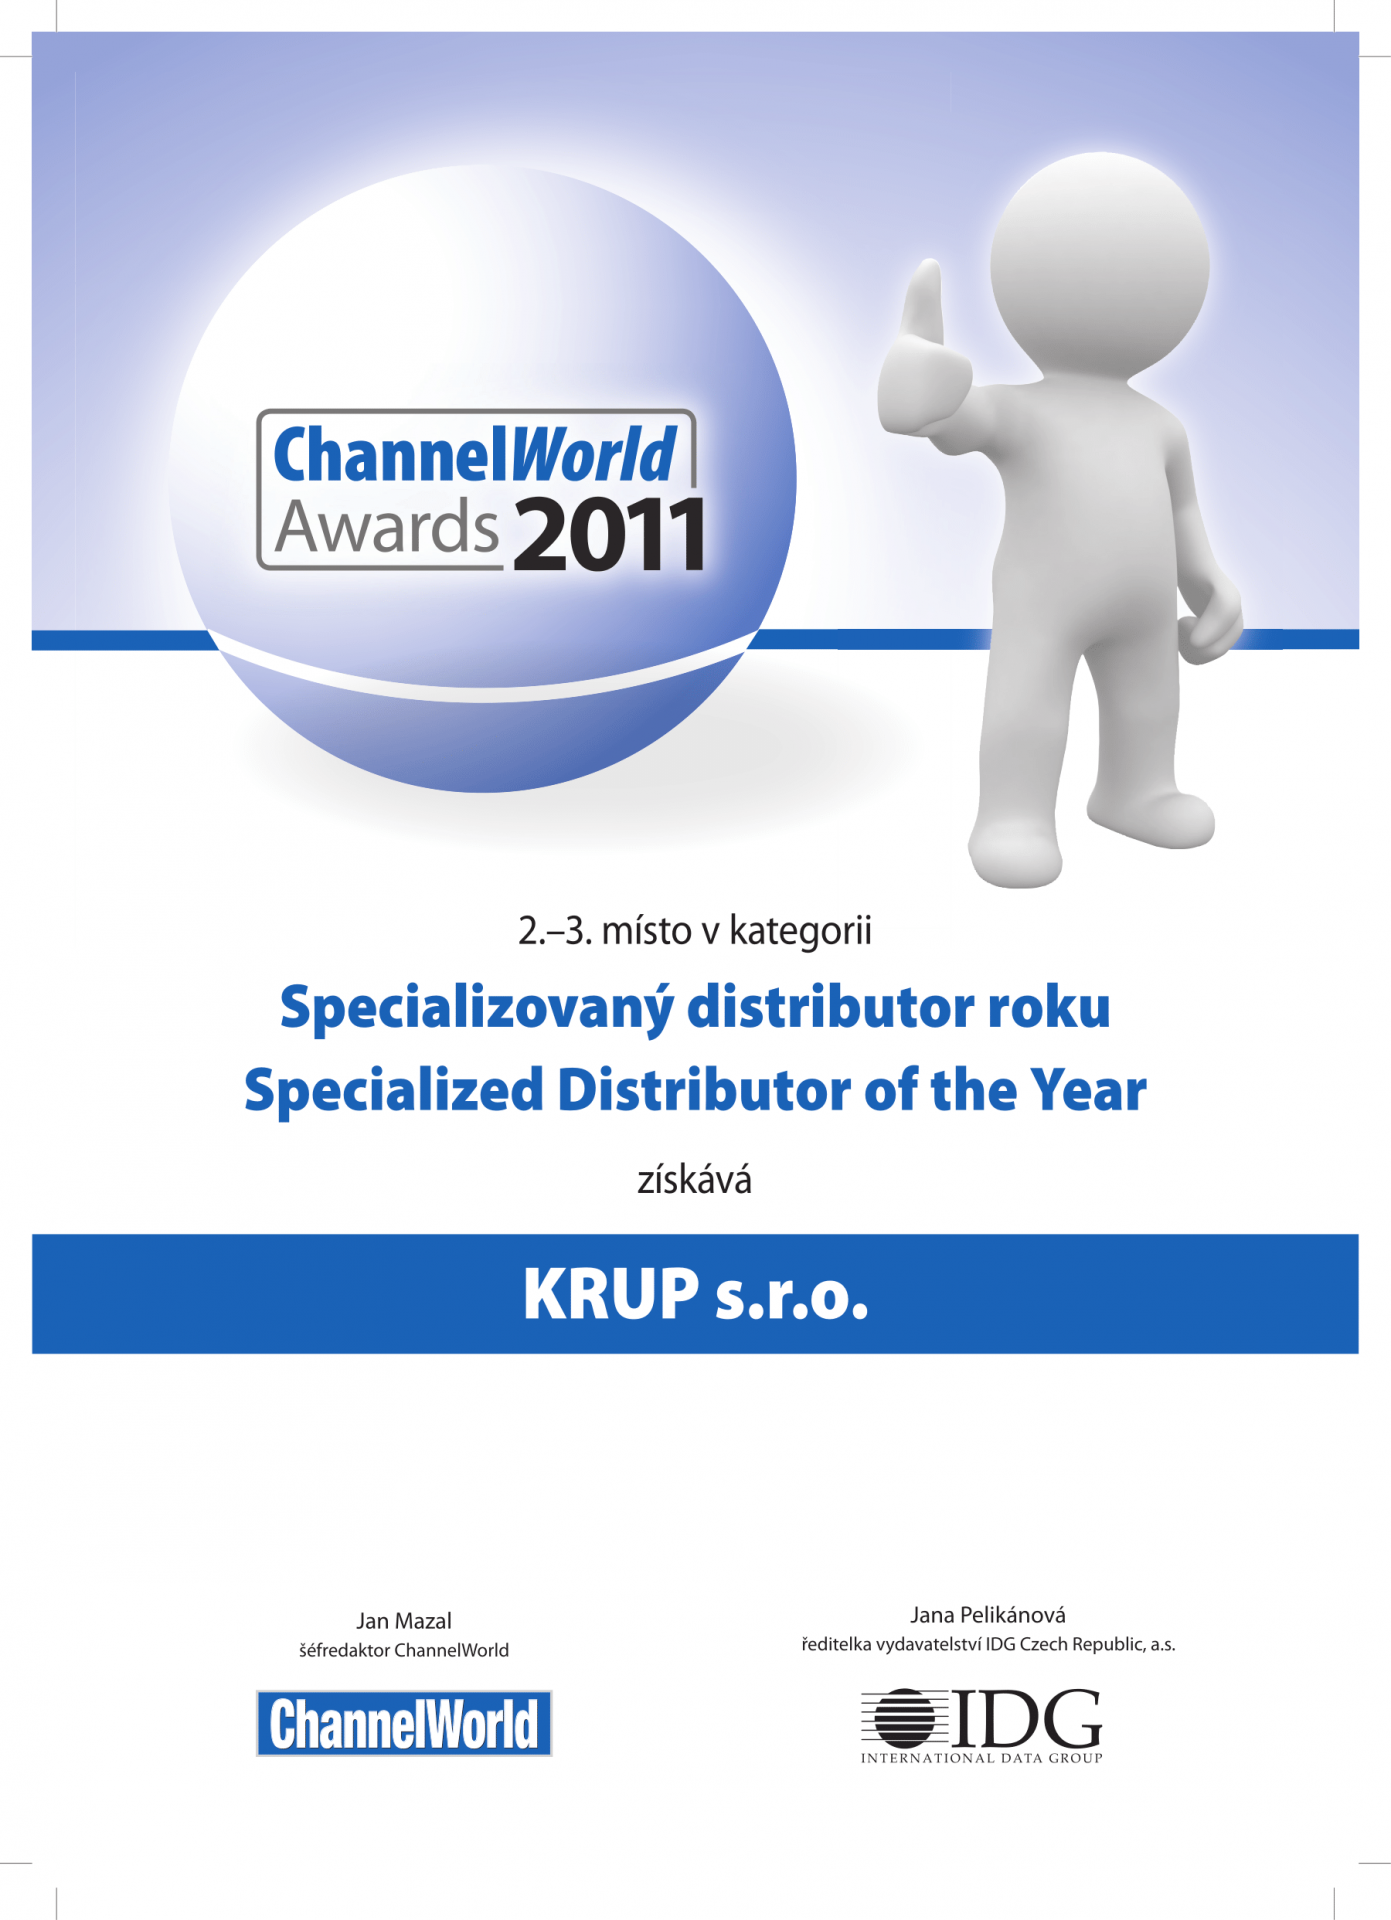 ChannelWorld 2011 second place